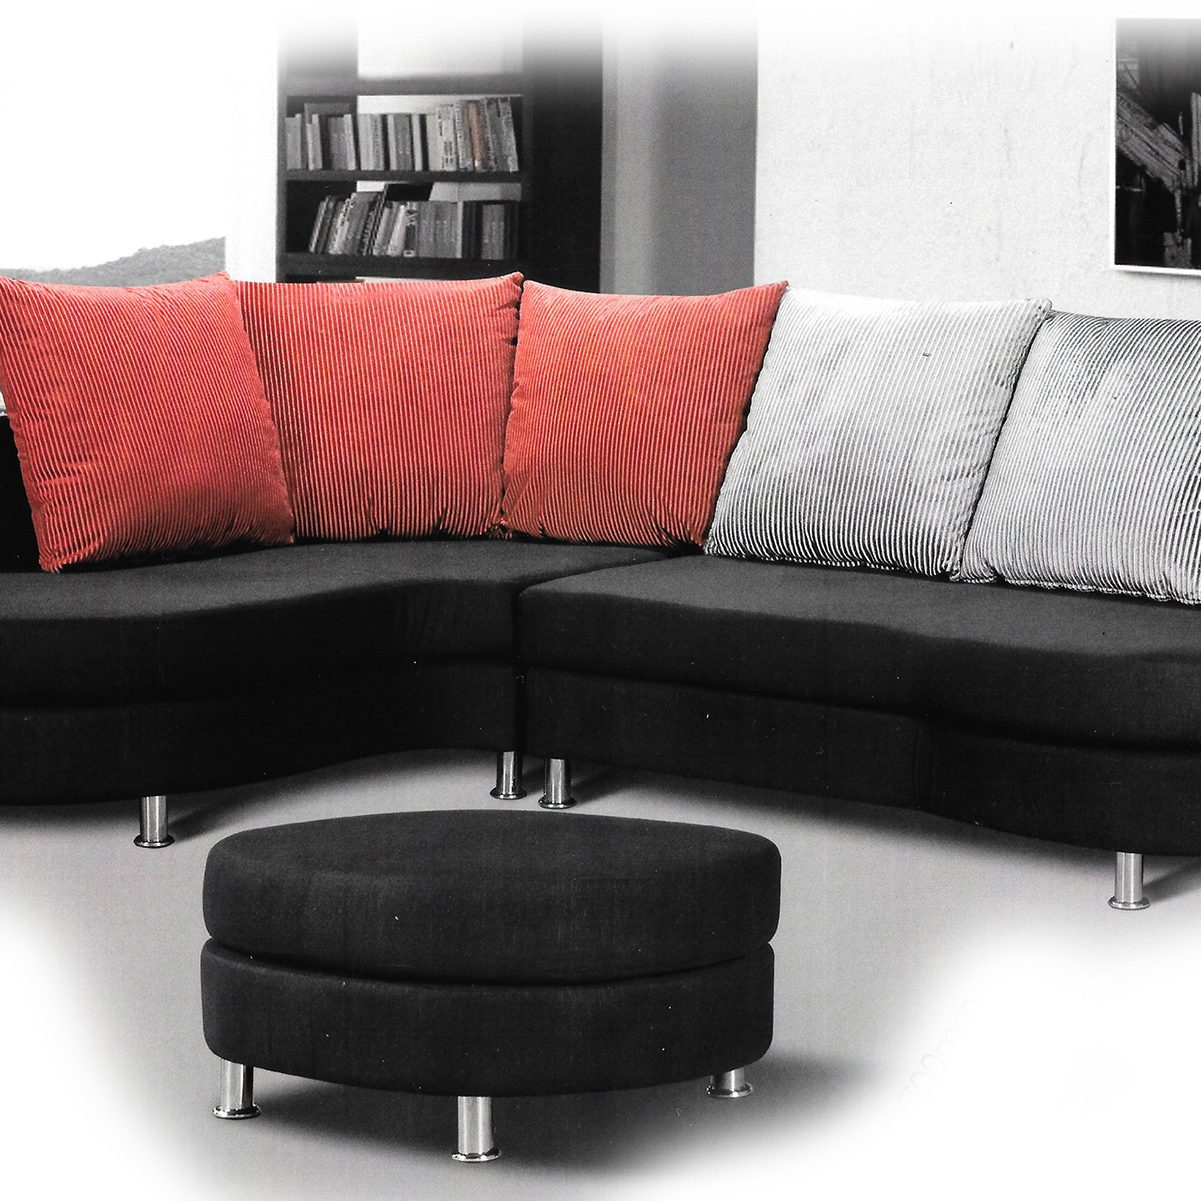 Konsen Furniture Design Sofa Set Vassallo ST-2006